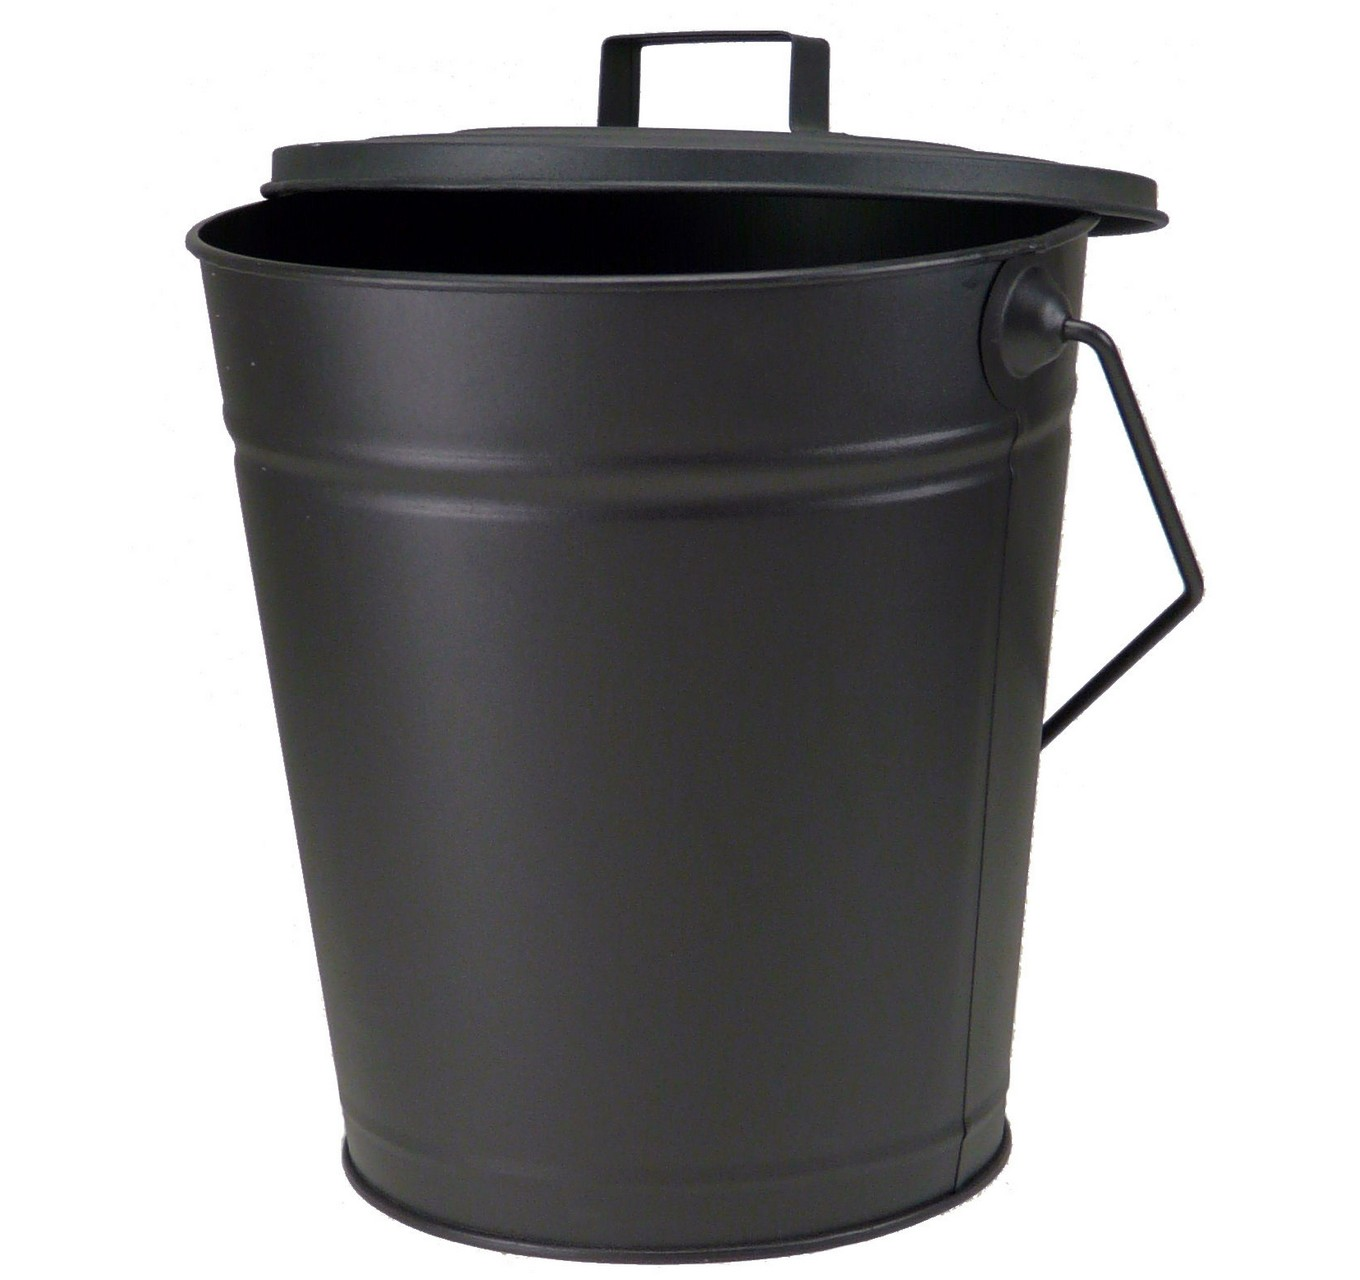 Dudley Bucket With Lid - Black